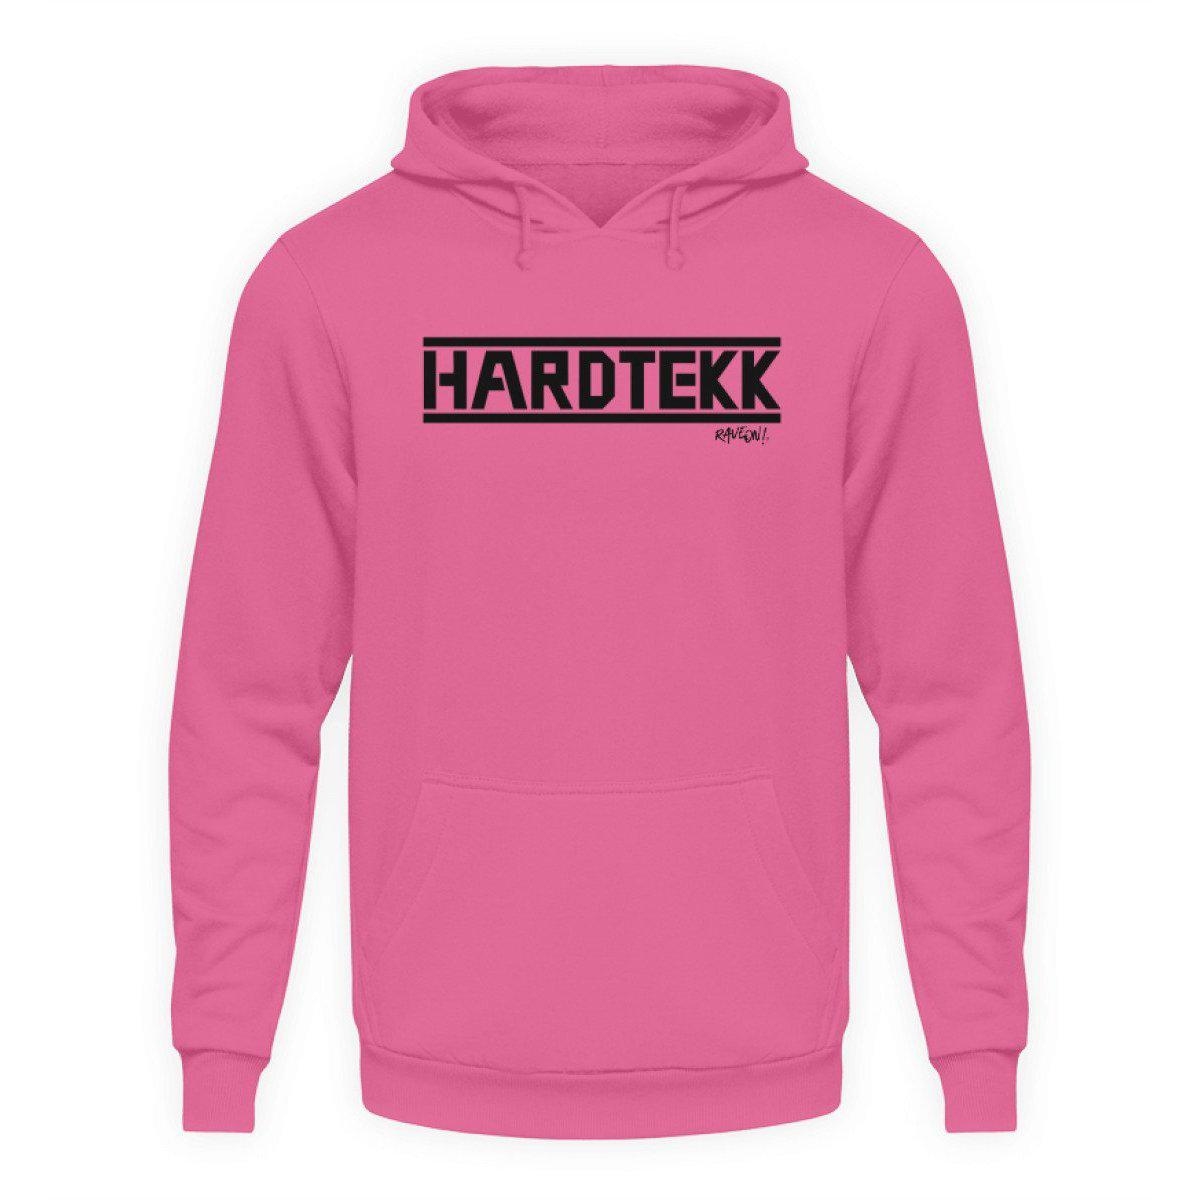 HARDTEKK white - Rave On!® - Unisex Kapuzenpullover Hoodie Unisex Hoodie Candyfloss Pink / L - Rave On!® der Club & Techno Szene Shop für Coole Junge Mode Streetwear Style & Fashion Outfits + Sexy Festival 420 Stuff